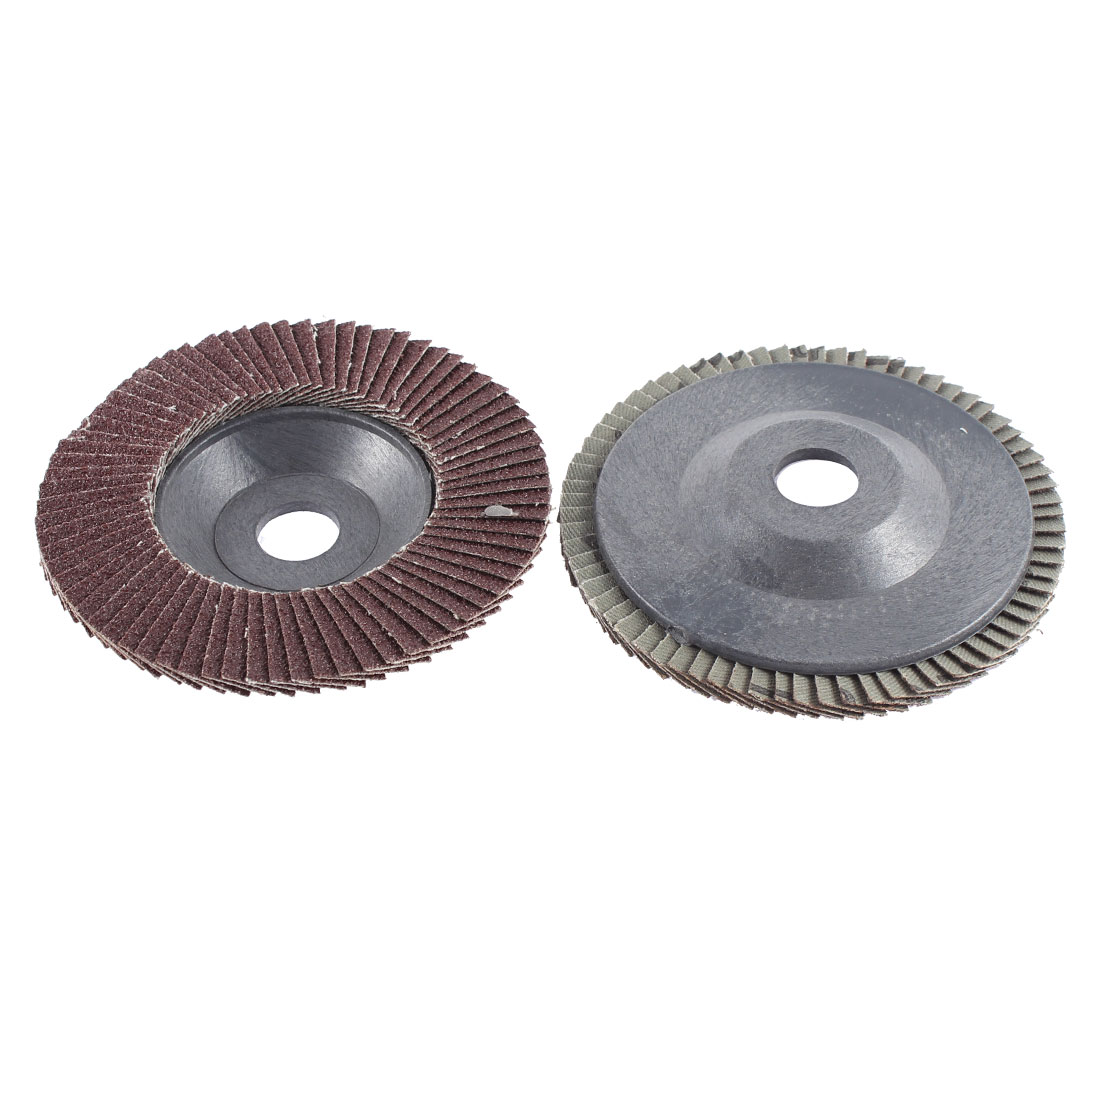 "Pair 4"" Dia Abrasive Flap Sanding Disc Grinding Wheel A80 13000 RPM"